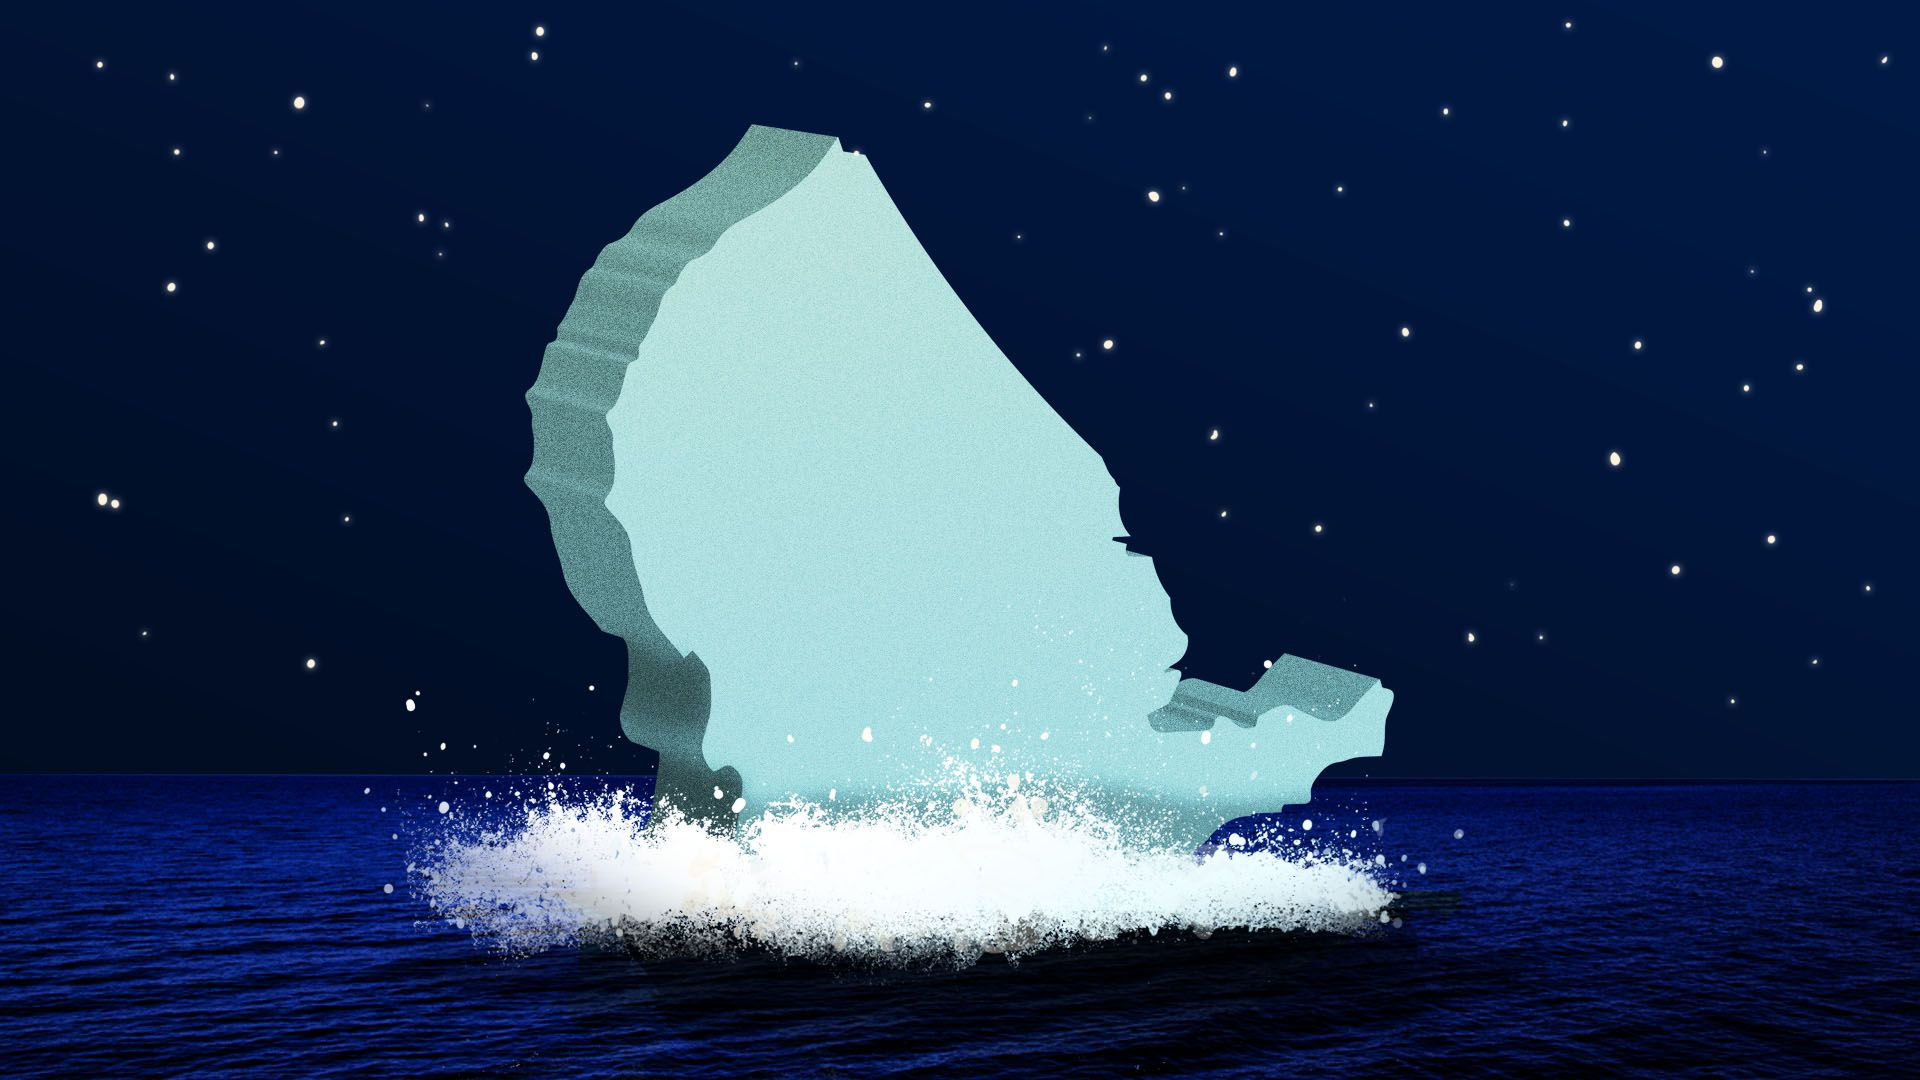 Illustration of the United States sinking into the ocean like the Titanic